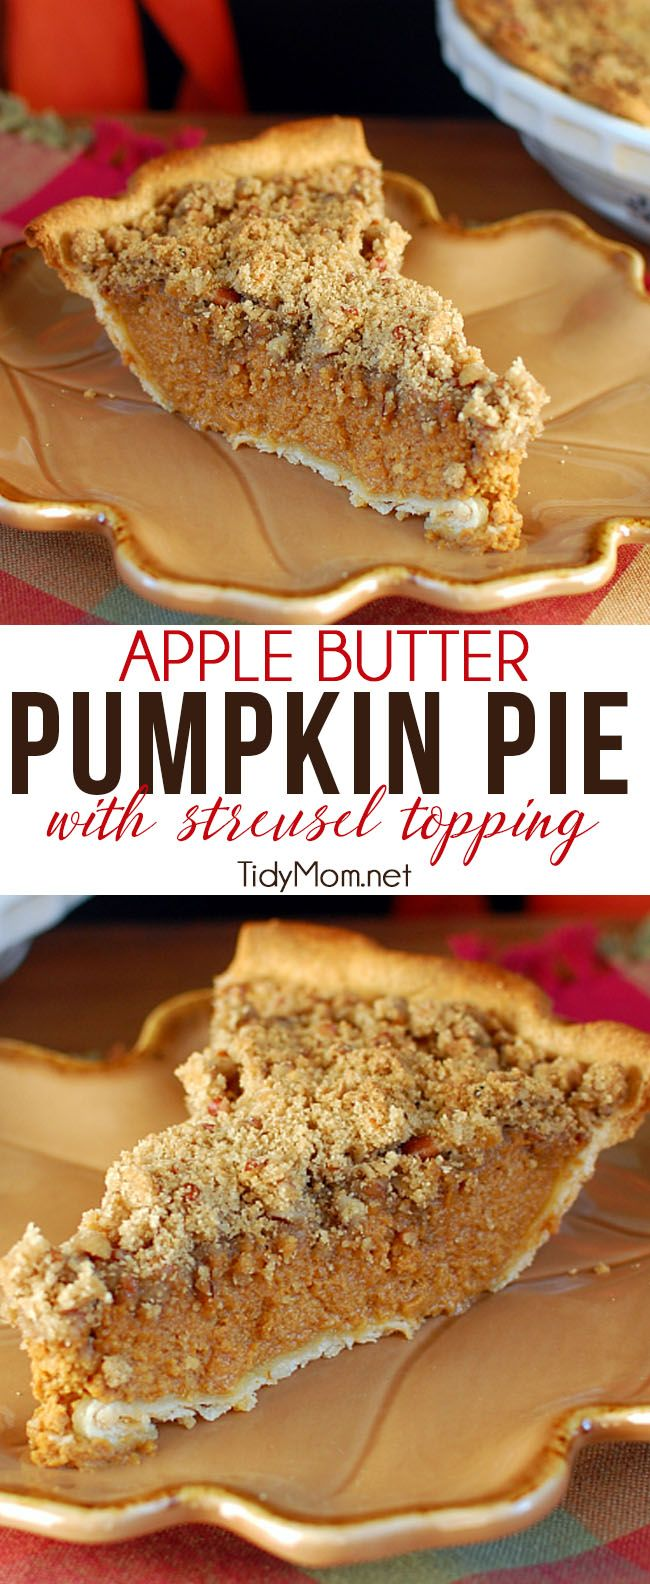 "APPLE BUTTER PUMPKIN PIE WITH STREUSEL TOPPING is a delicious combination of flavors and texture that just screams ""fall"" with apple and pumpkin, in a heavenly spiced custard pie. The slightly crisp pecan streusel topping gives a surprising crunch in every bite."